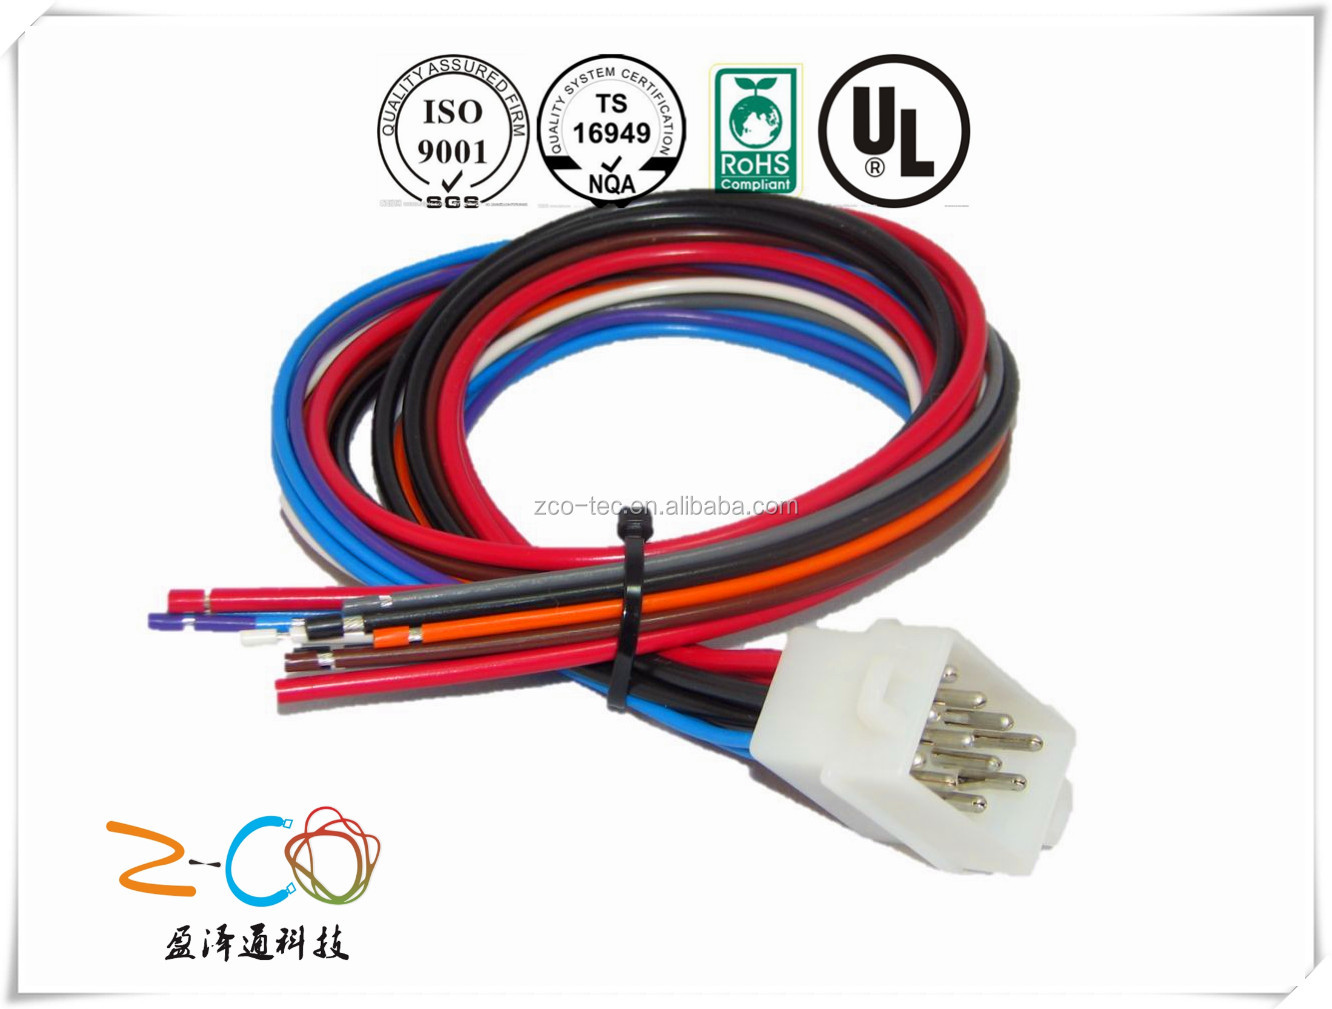 Cg125 Harness Suppliers And Manufacturers At Motorcycle Wiring Connectors